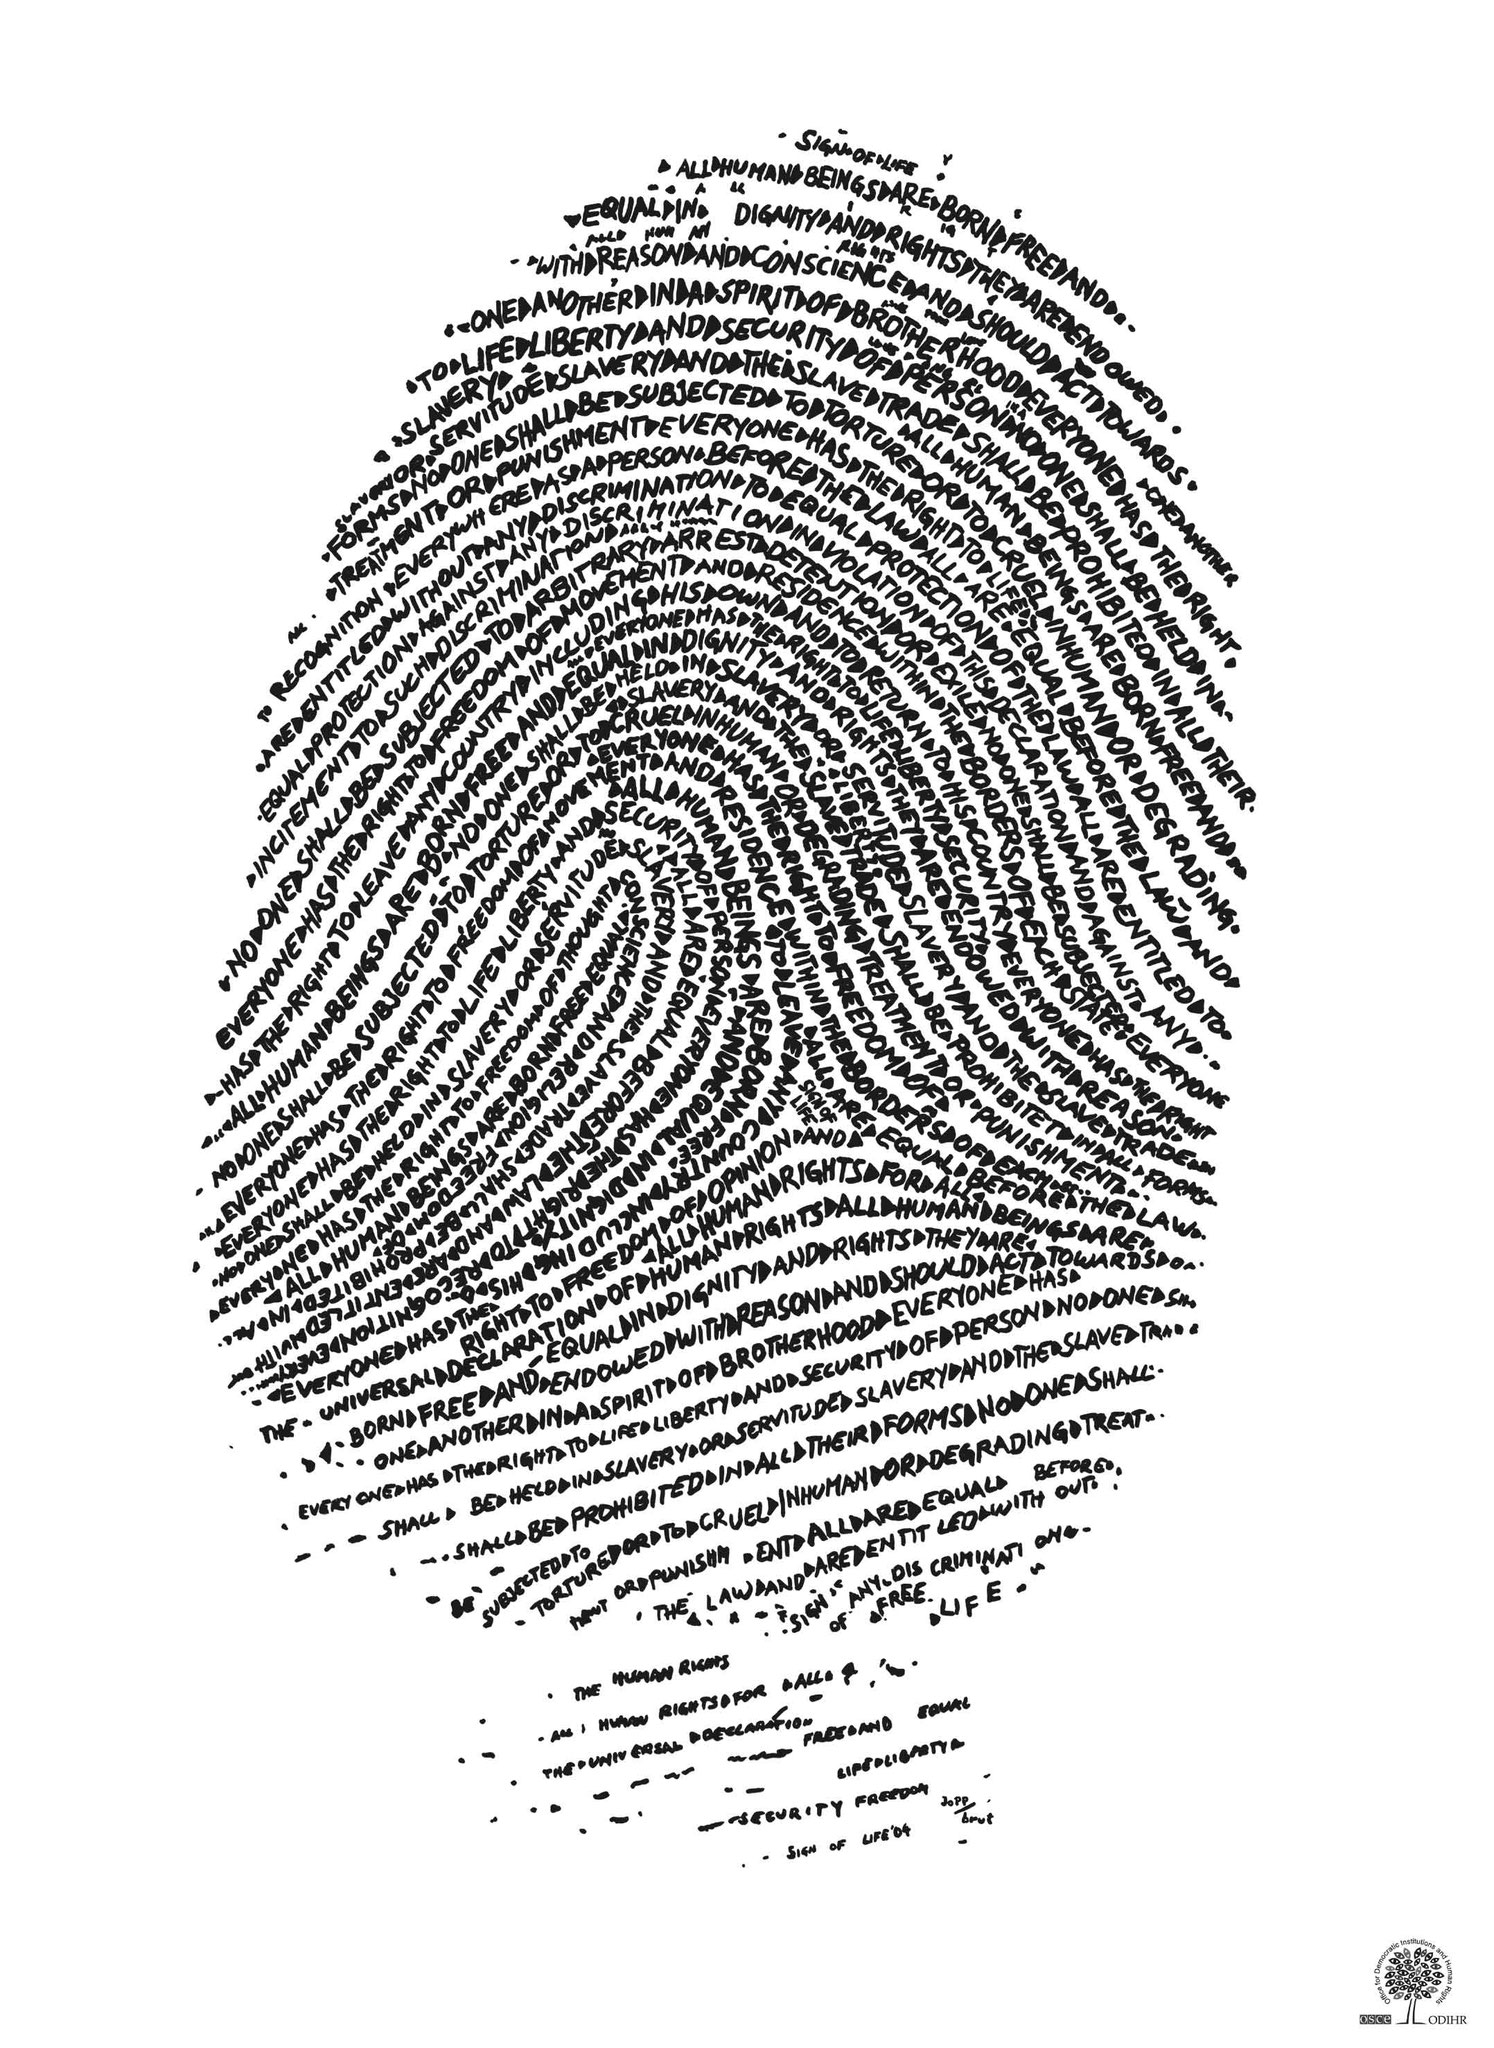 Sign of Life: Fingerprint of Human Rights